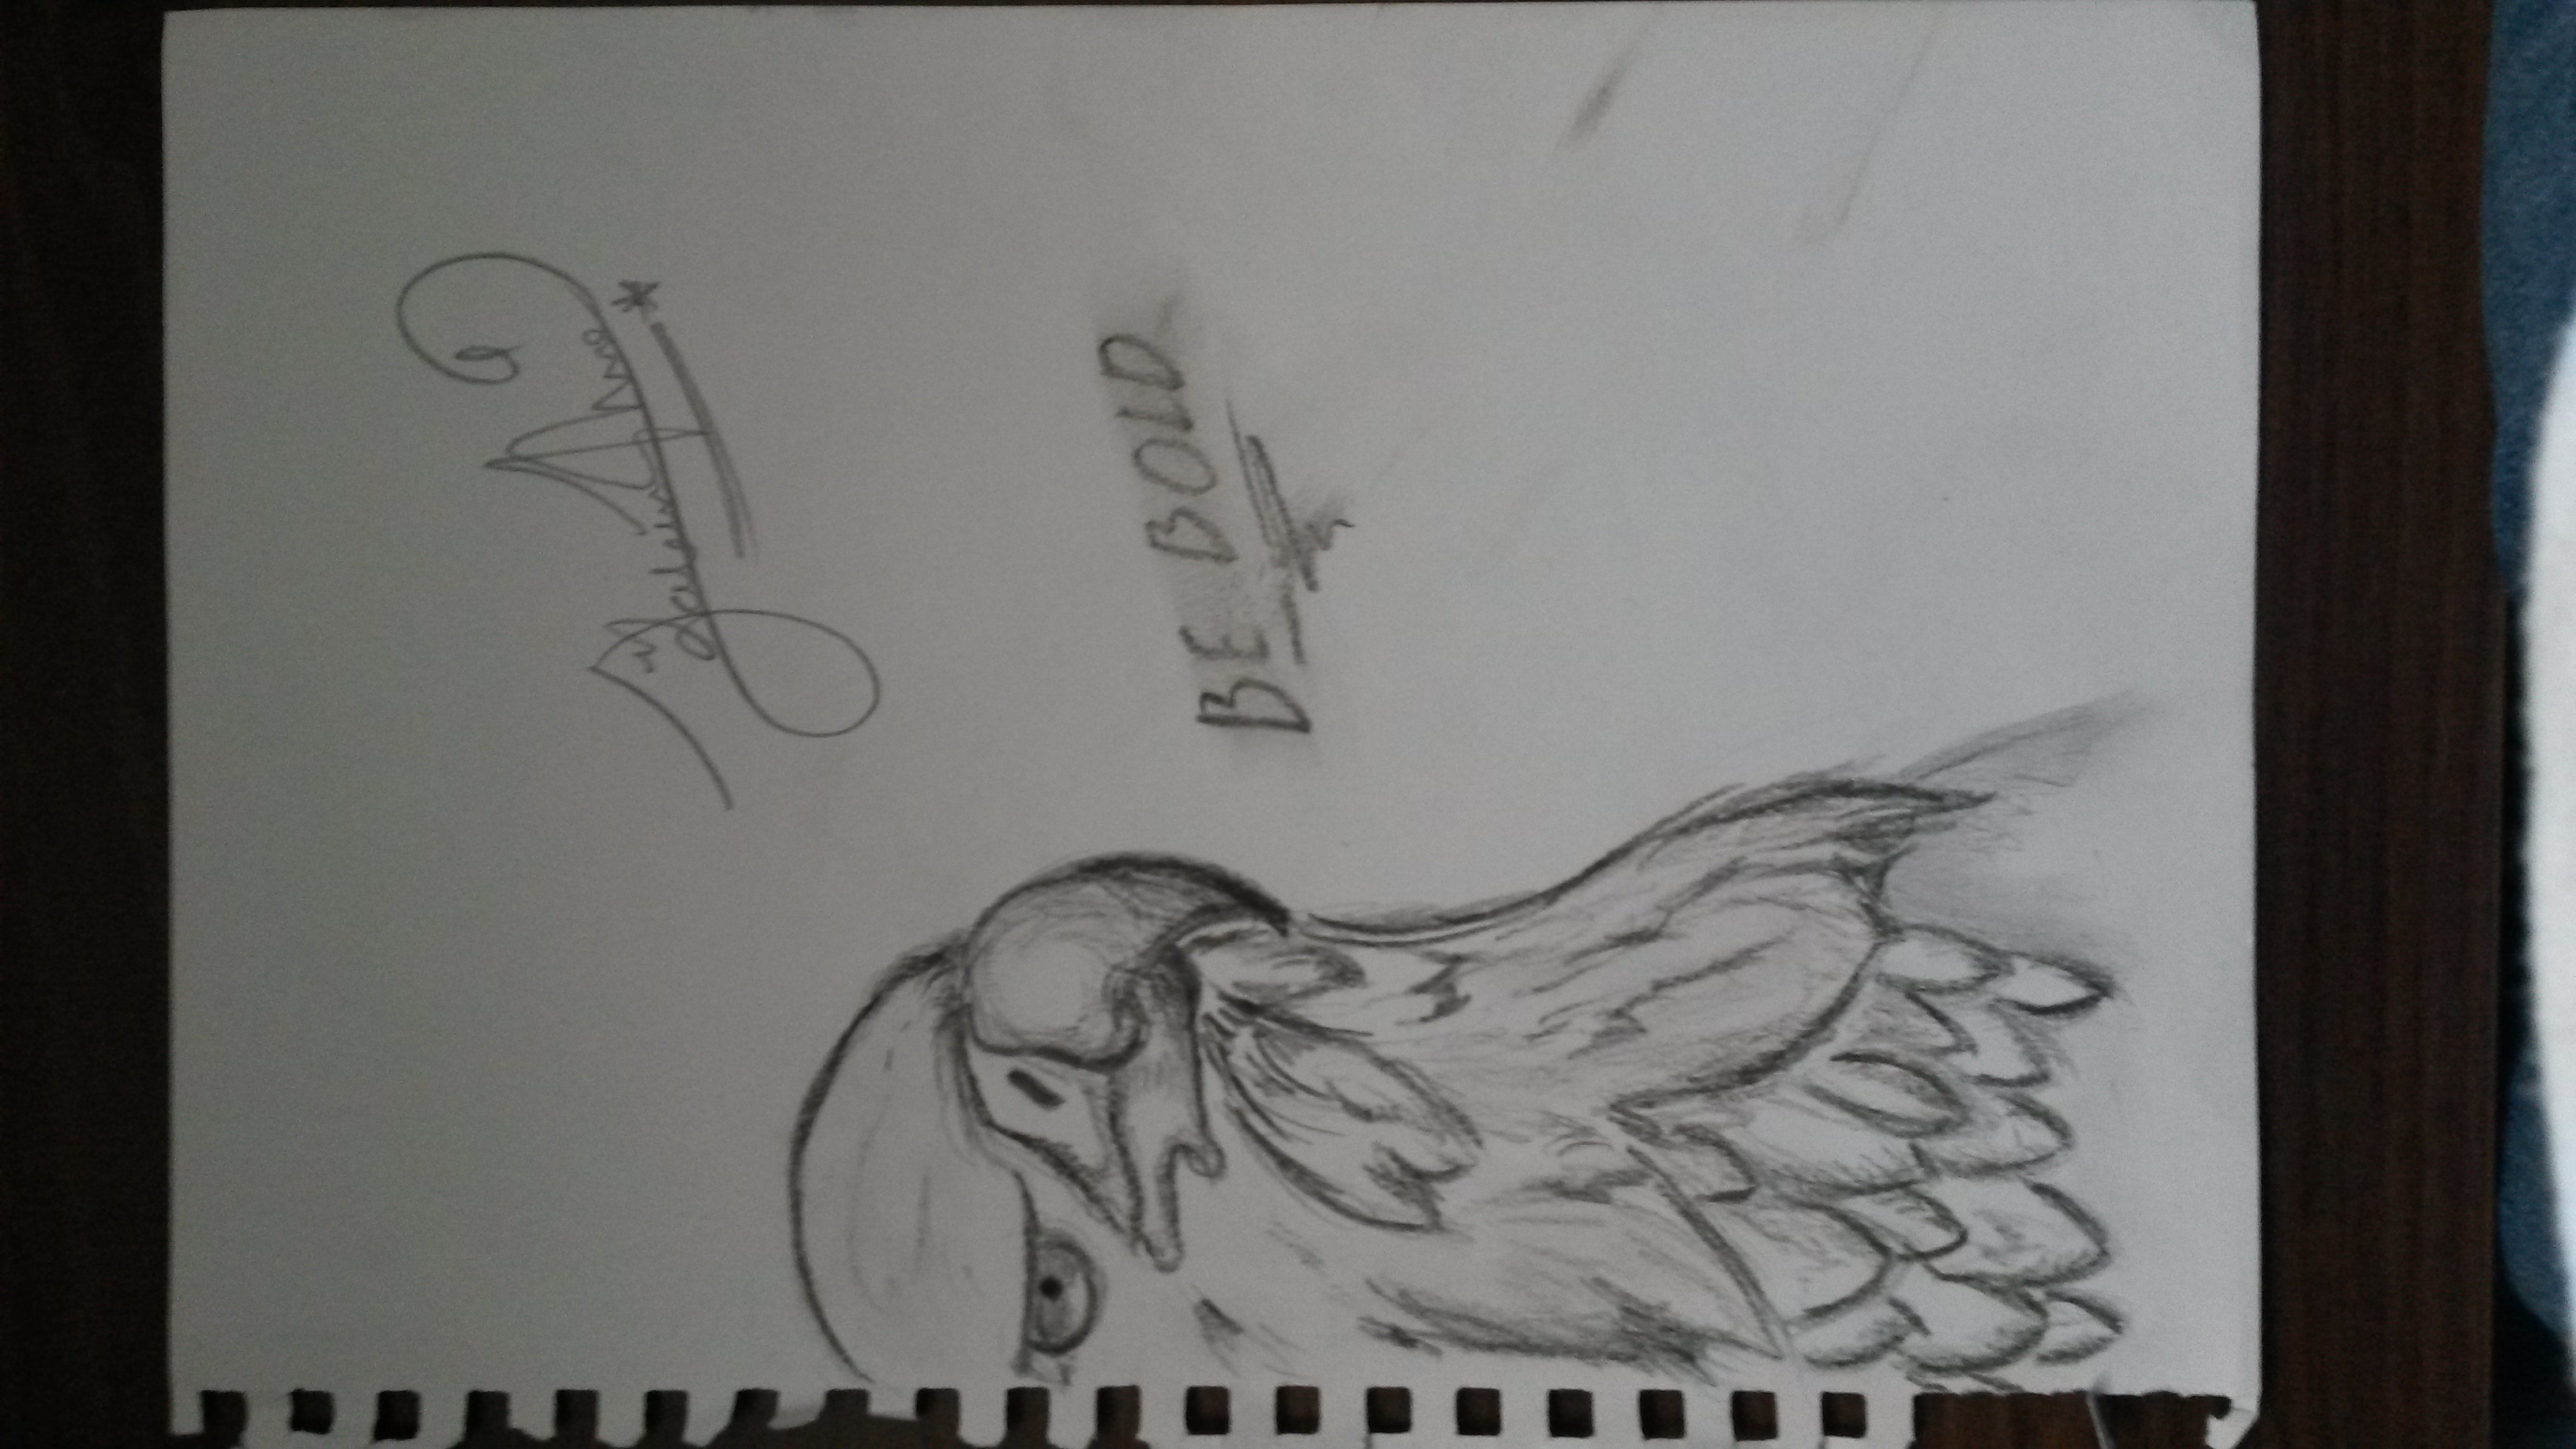 Quick sketch from a while back